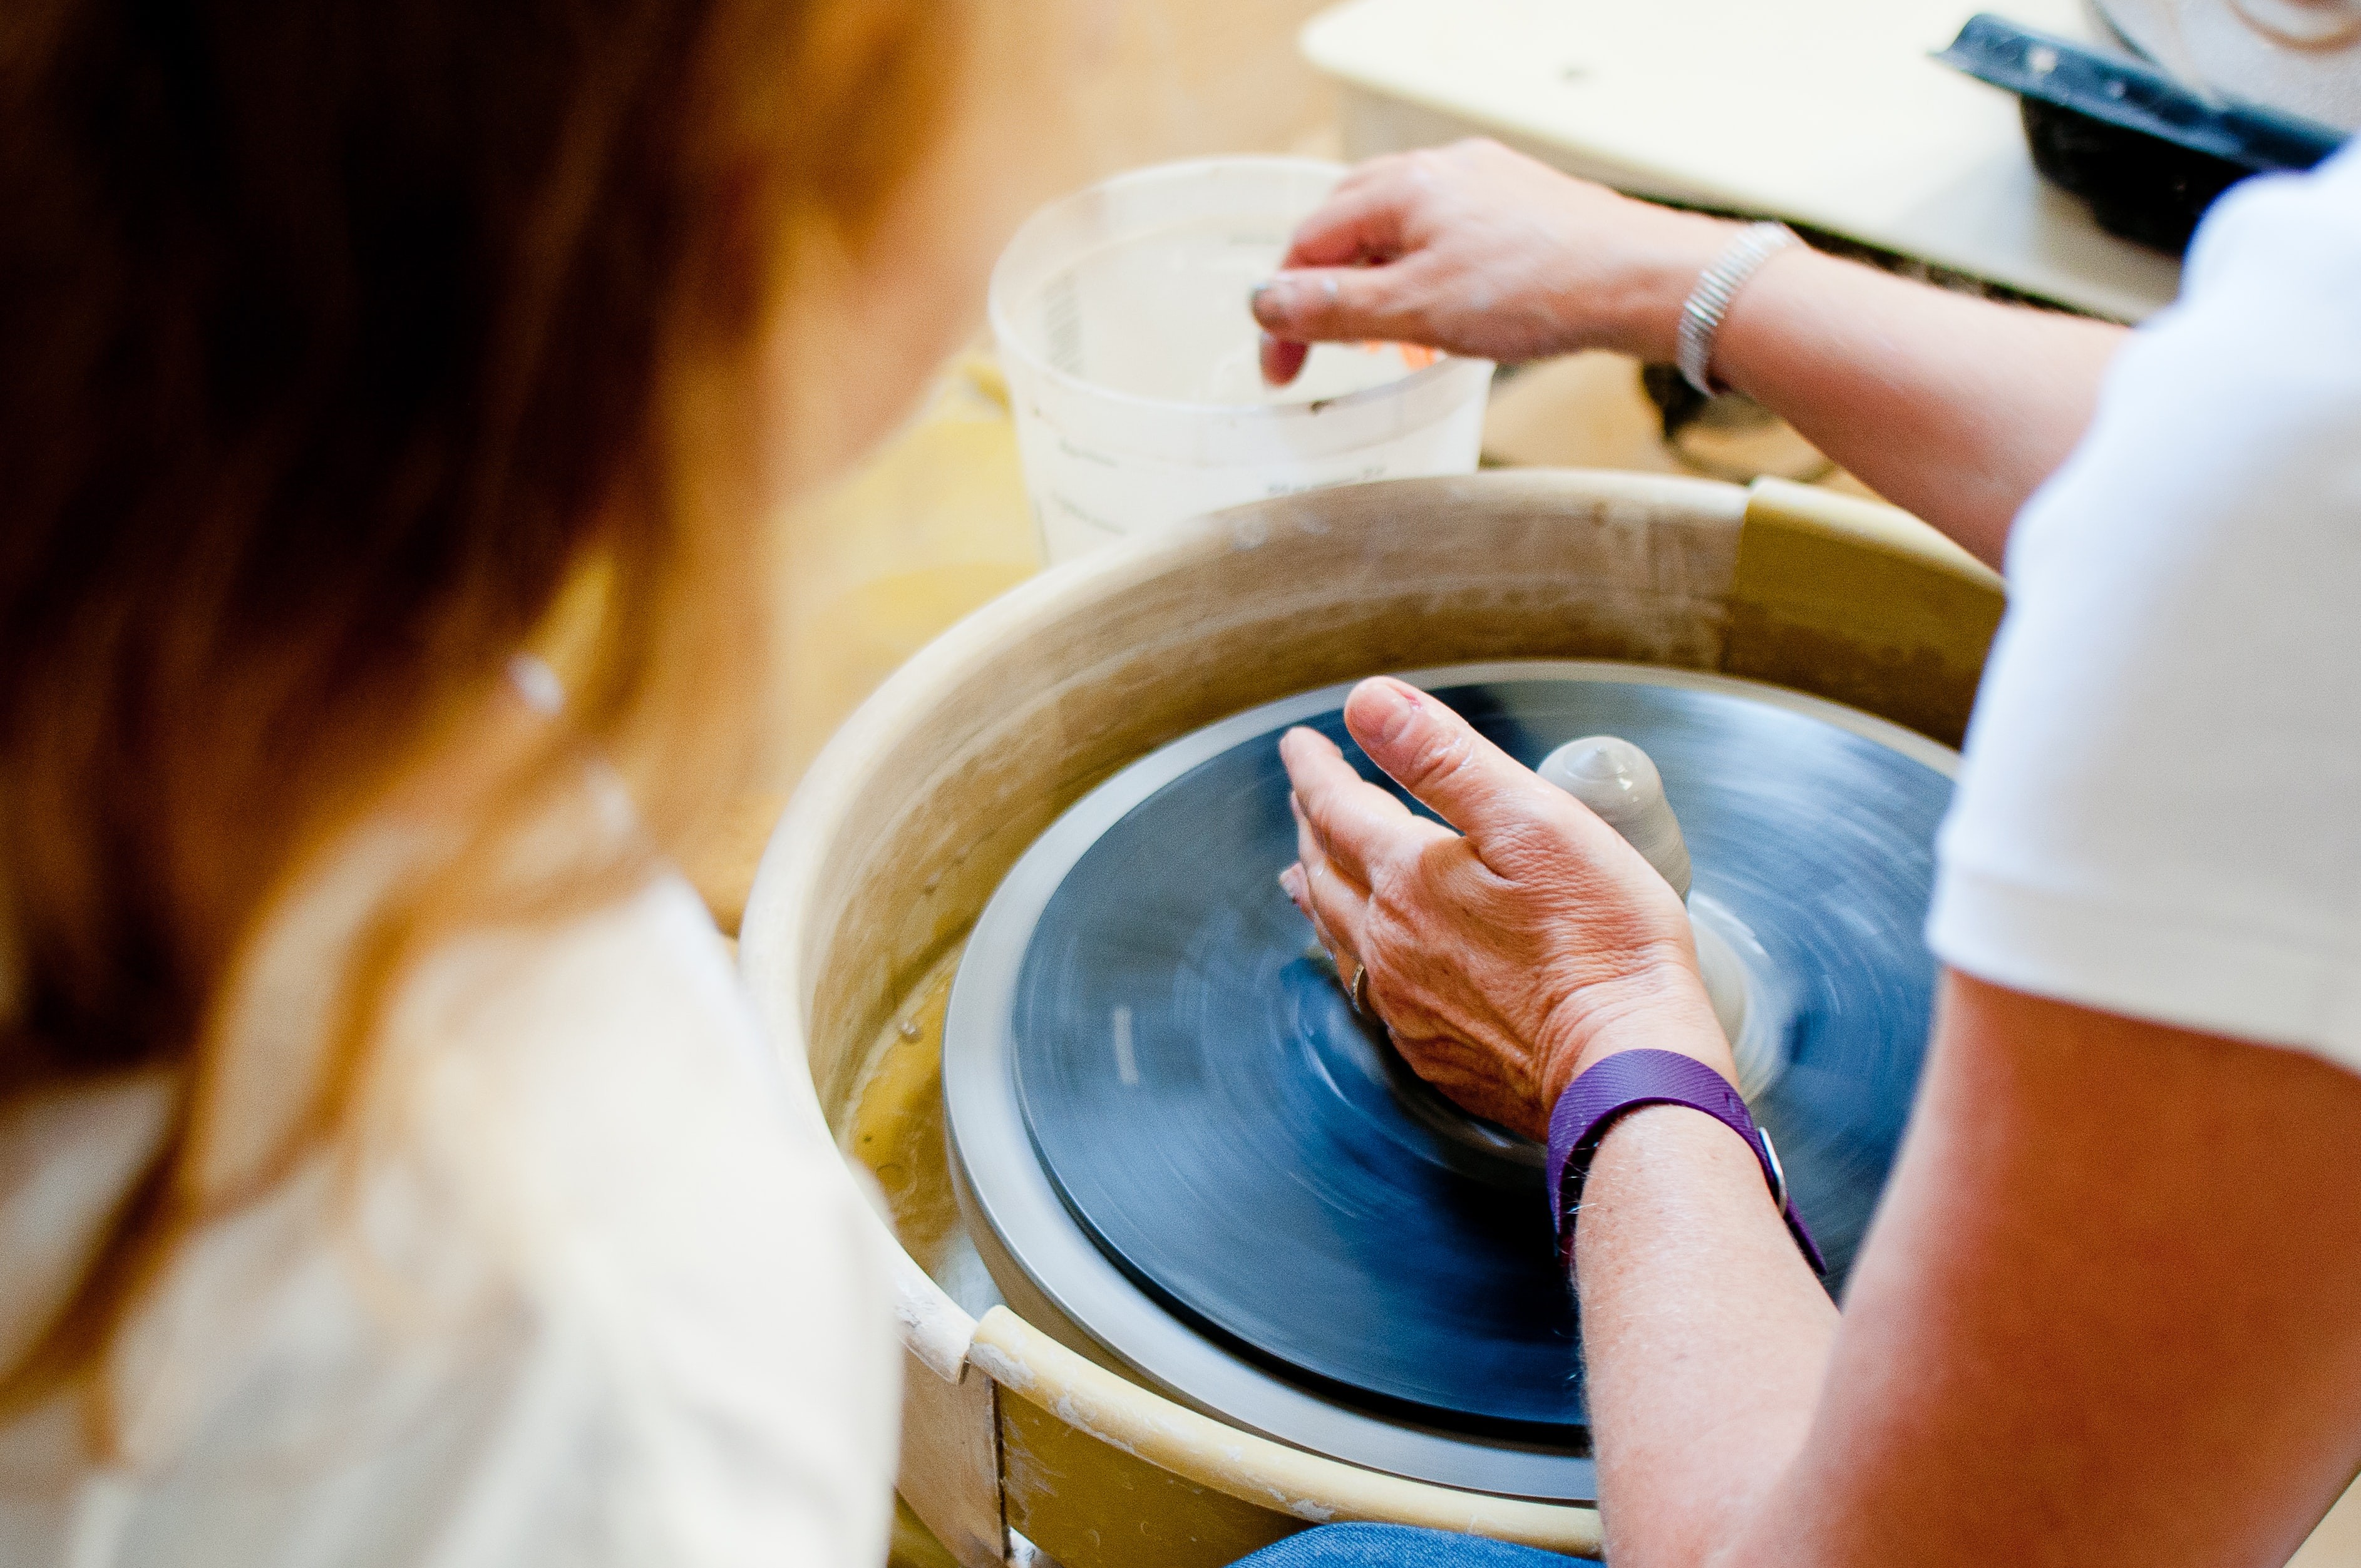 [Image description: a woman spinning a vase of pottery] Via Unsplash